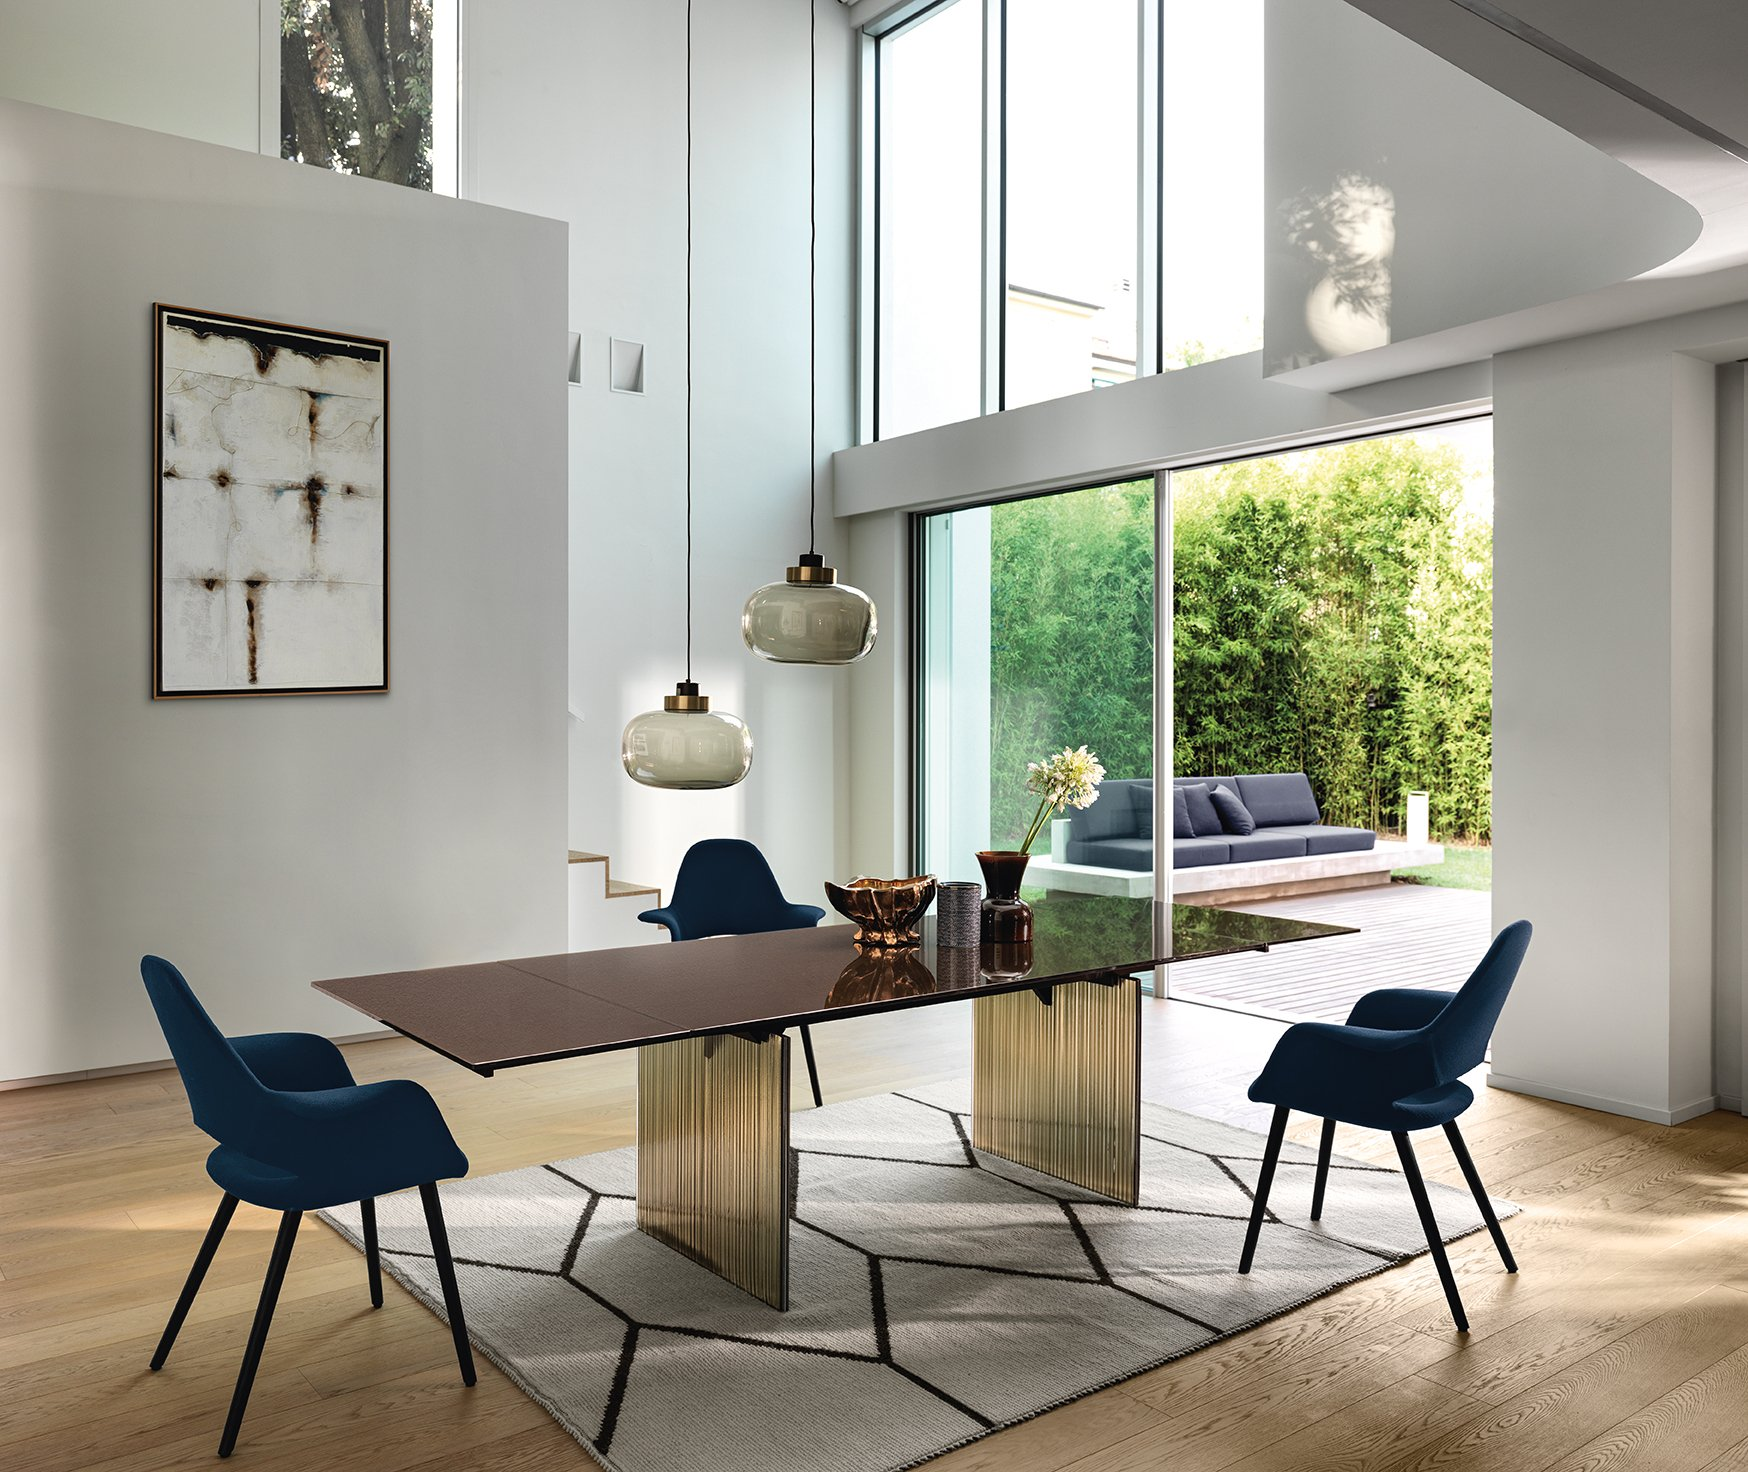 Waves Dining Table from Fiam